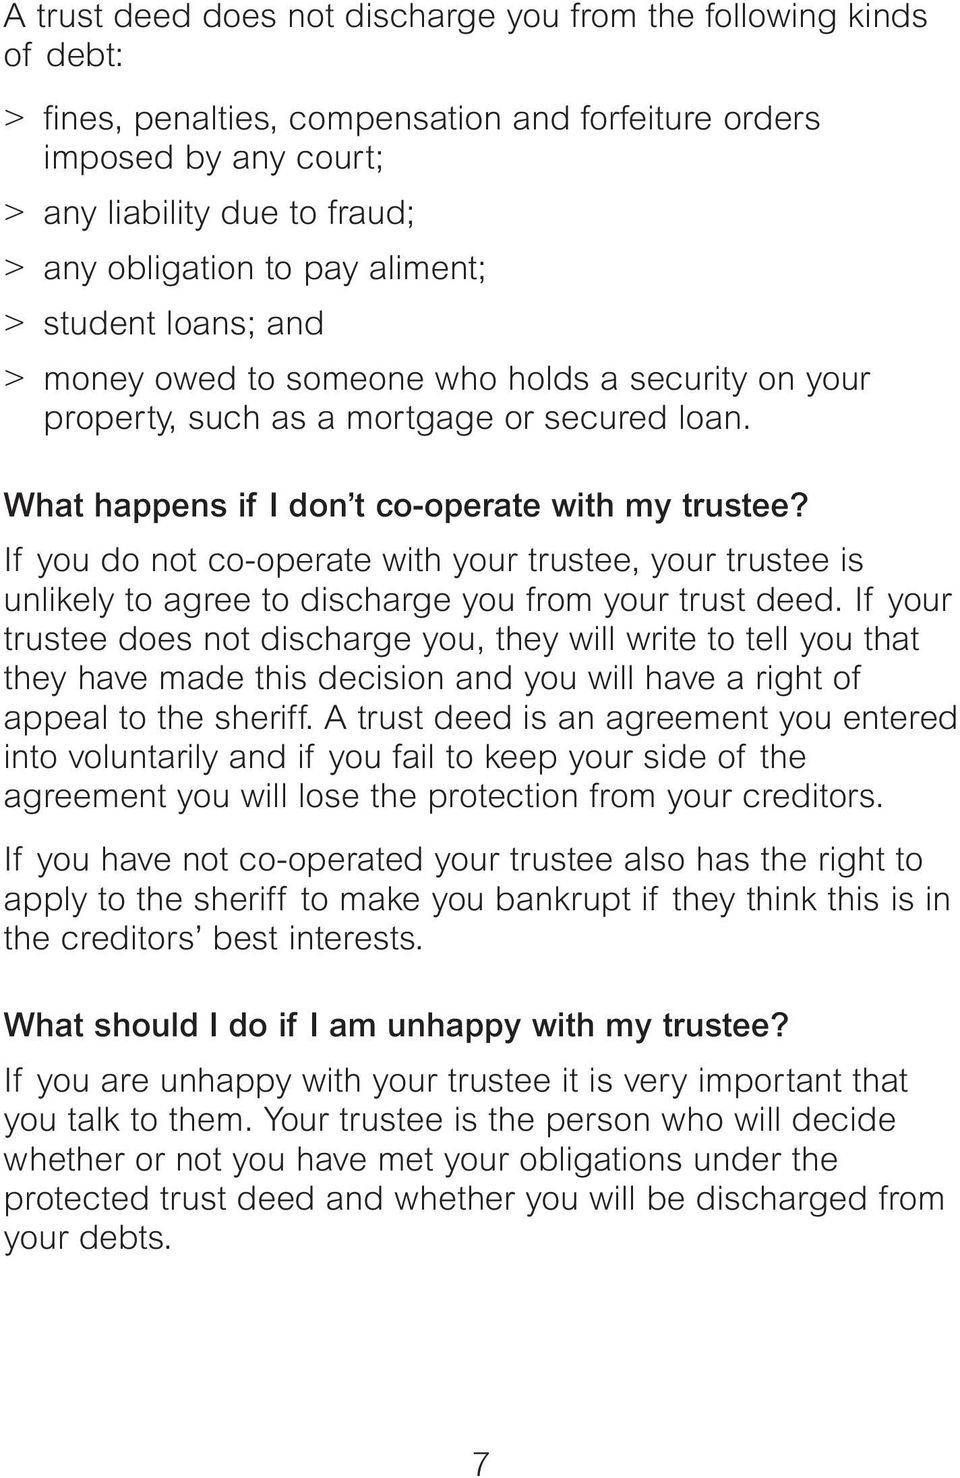 If you do not co-operate with your trustee, your trustee is unlikely to agree to discharge you from your trust deed.